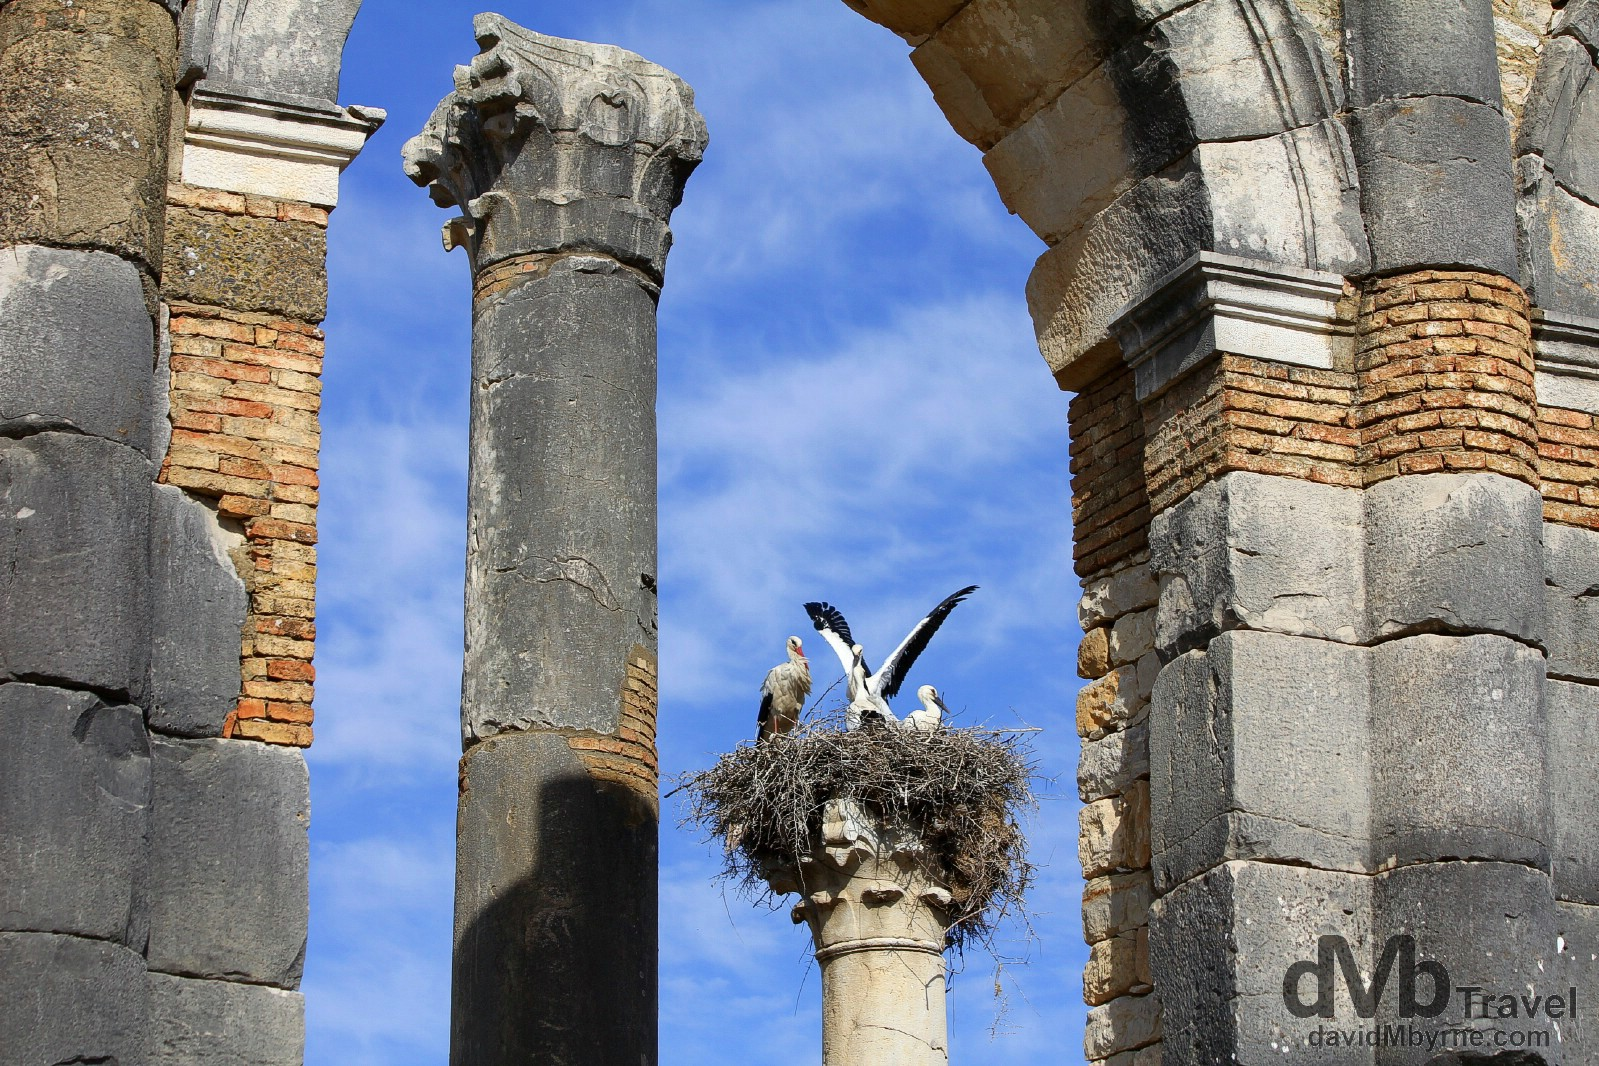 Storks as seen through arches of the Forum at the UNESCO-listed Roman ruins of Volubilis in northern Morocco. May 25th, 2014.